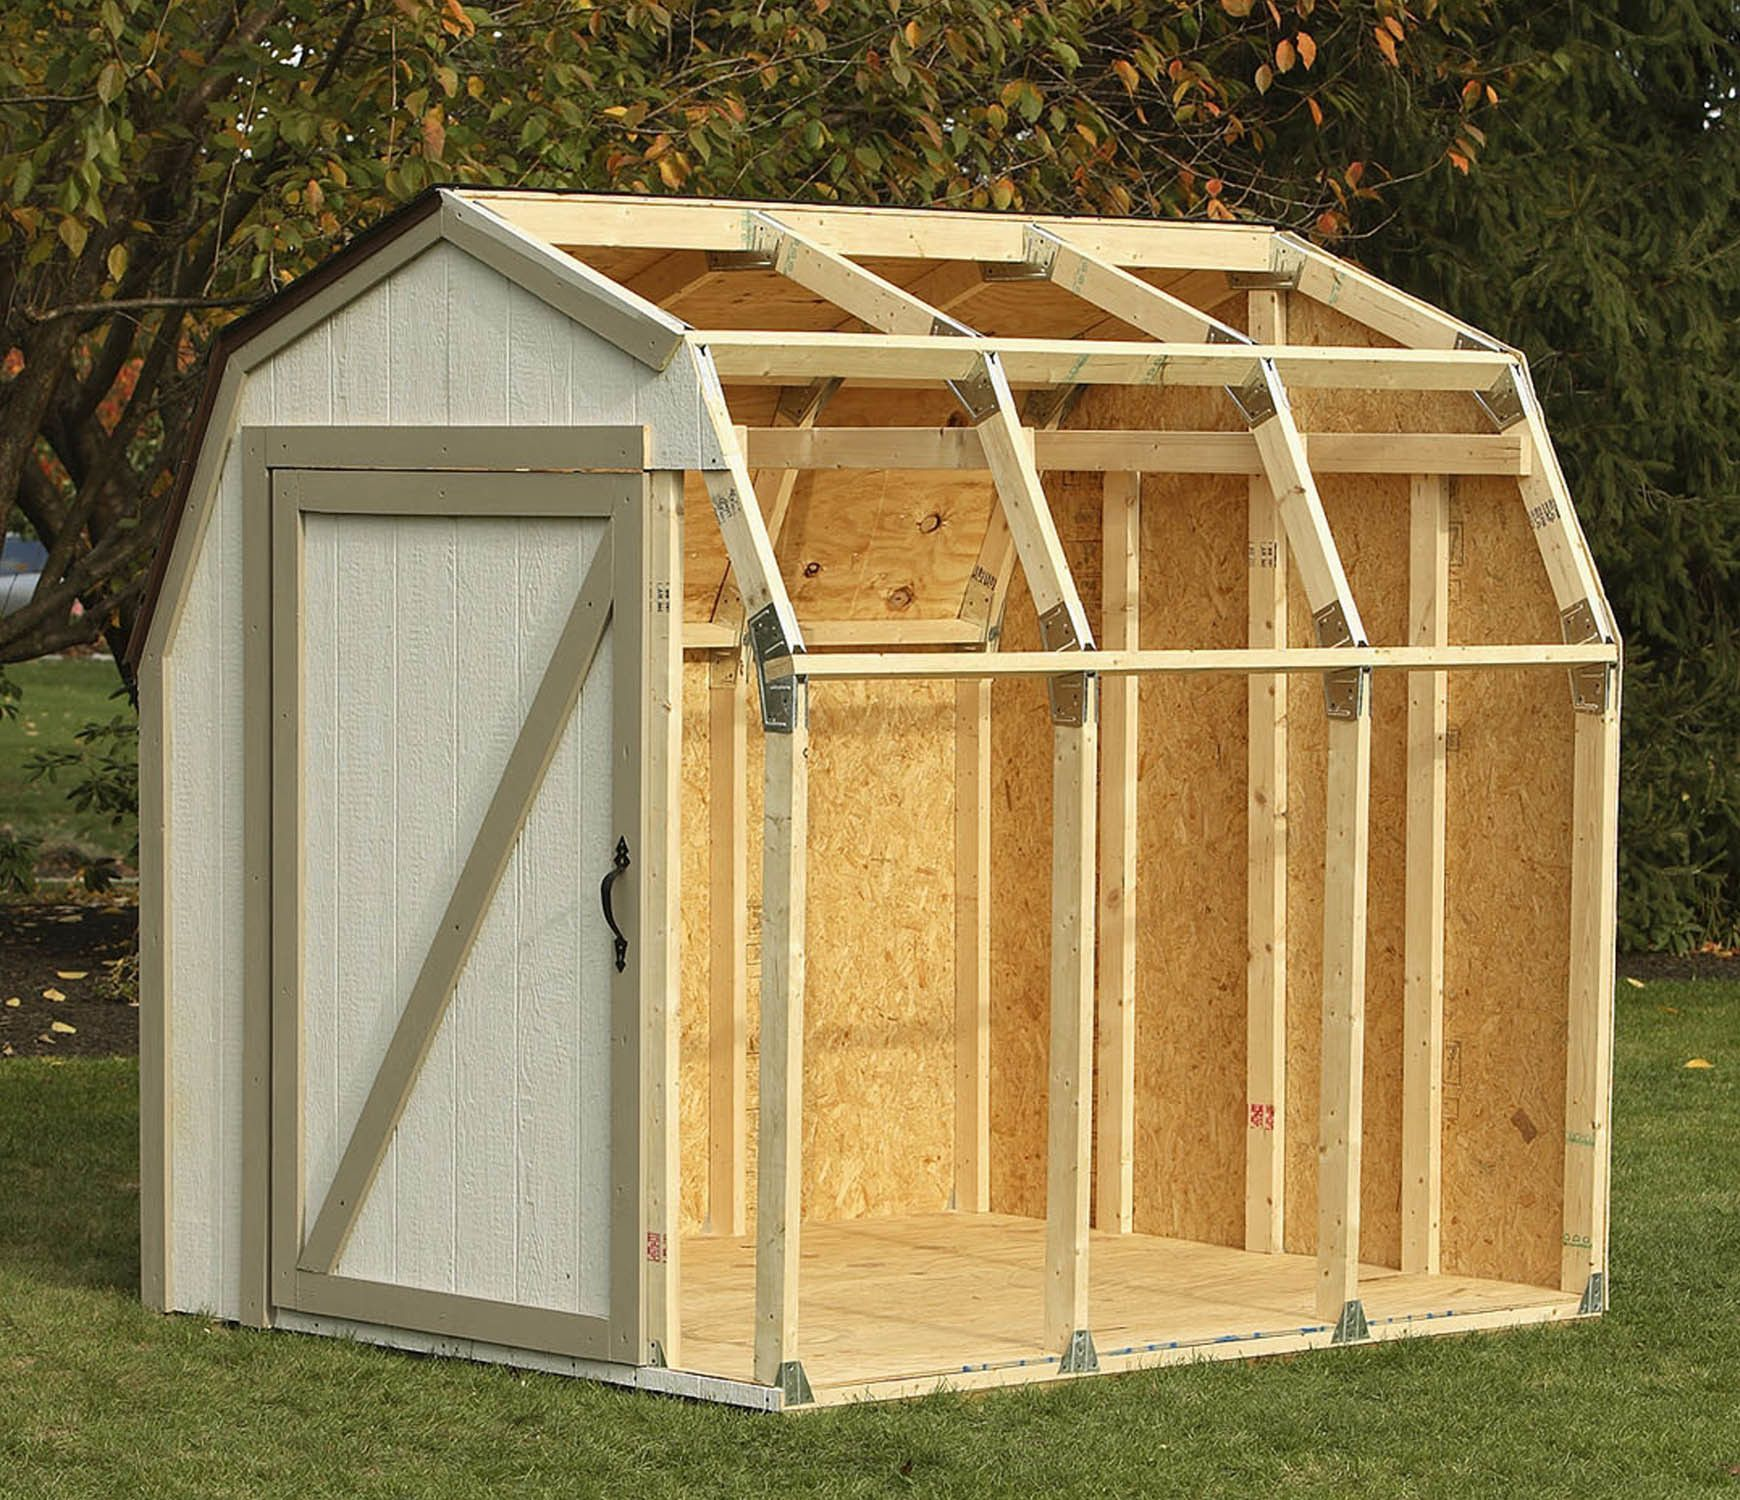 Shed Kit for Barn Roof | Products | Pinterest | Schuppen, Sammlung ...